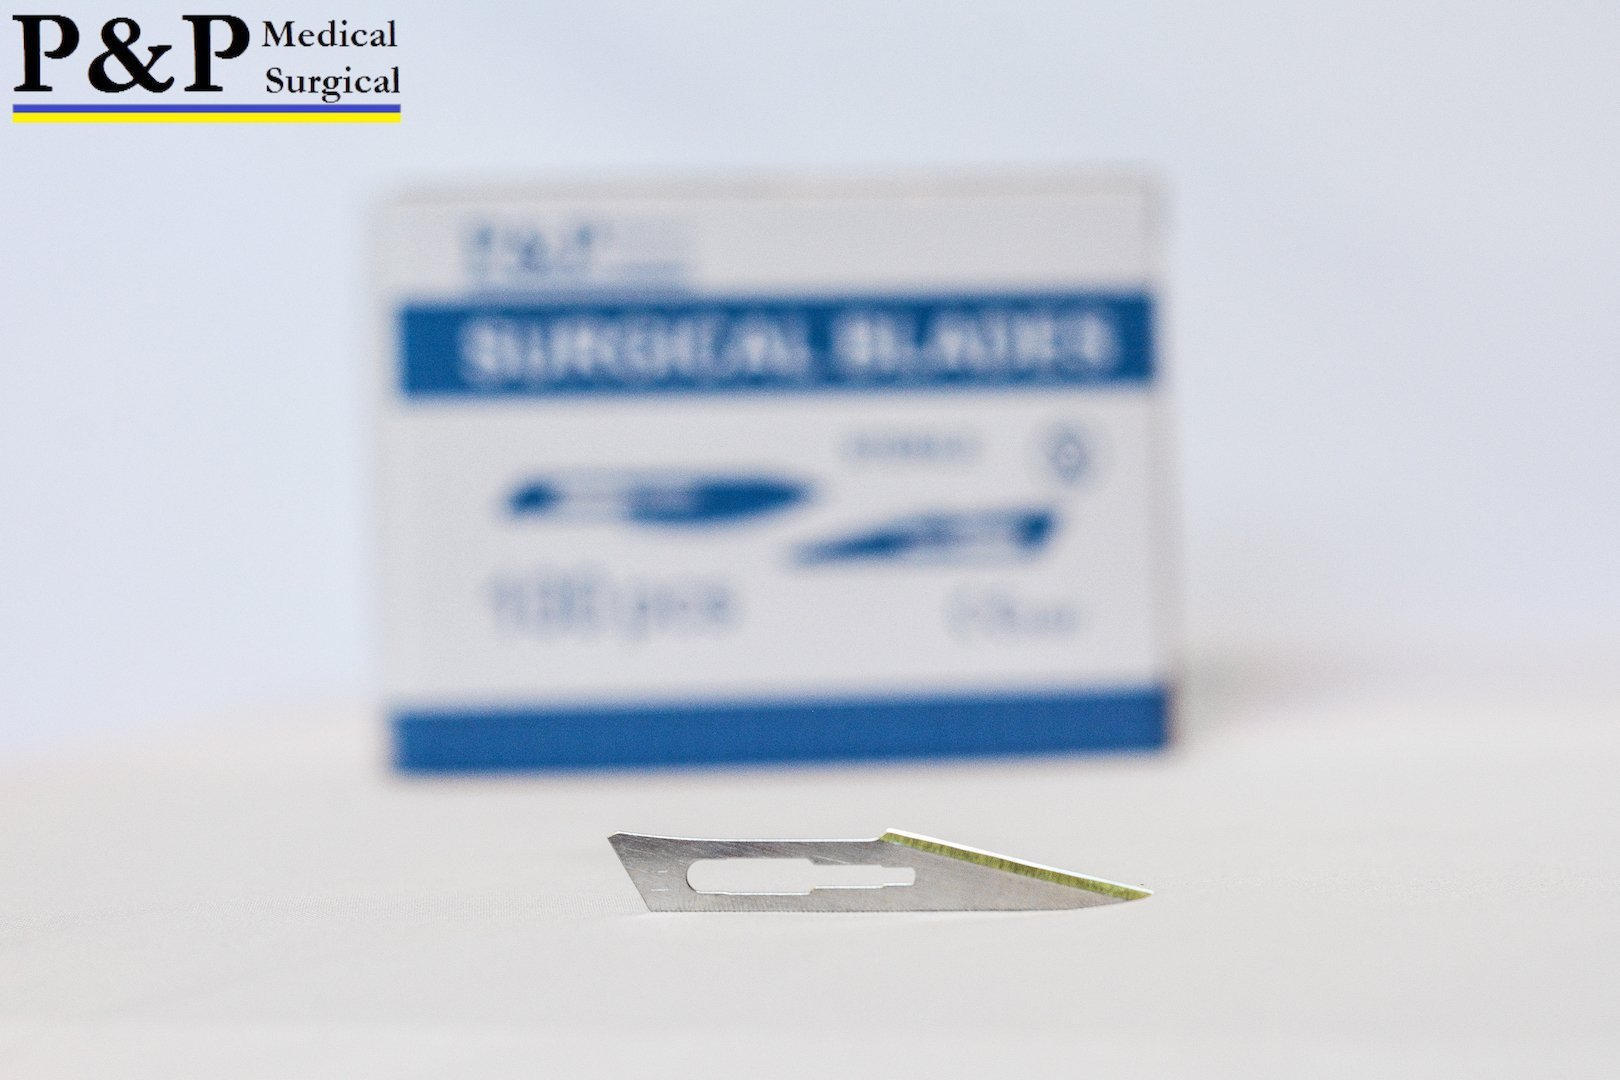 SCALPEL BLADE DISPOSABLE SURGICAL Size 11 (3000 blades) (High Grade Carbon Steel 2.1%,10xx) ,DESIGNED in USA by P&P Medical Surgical (Image #5)